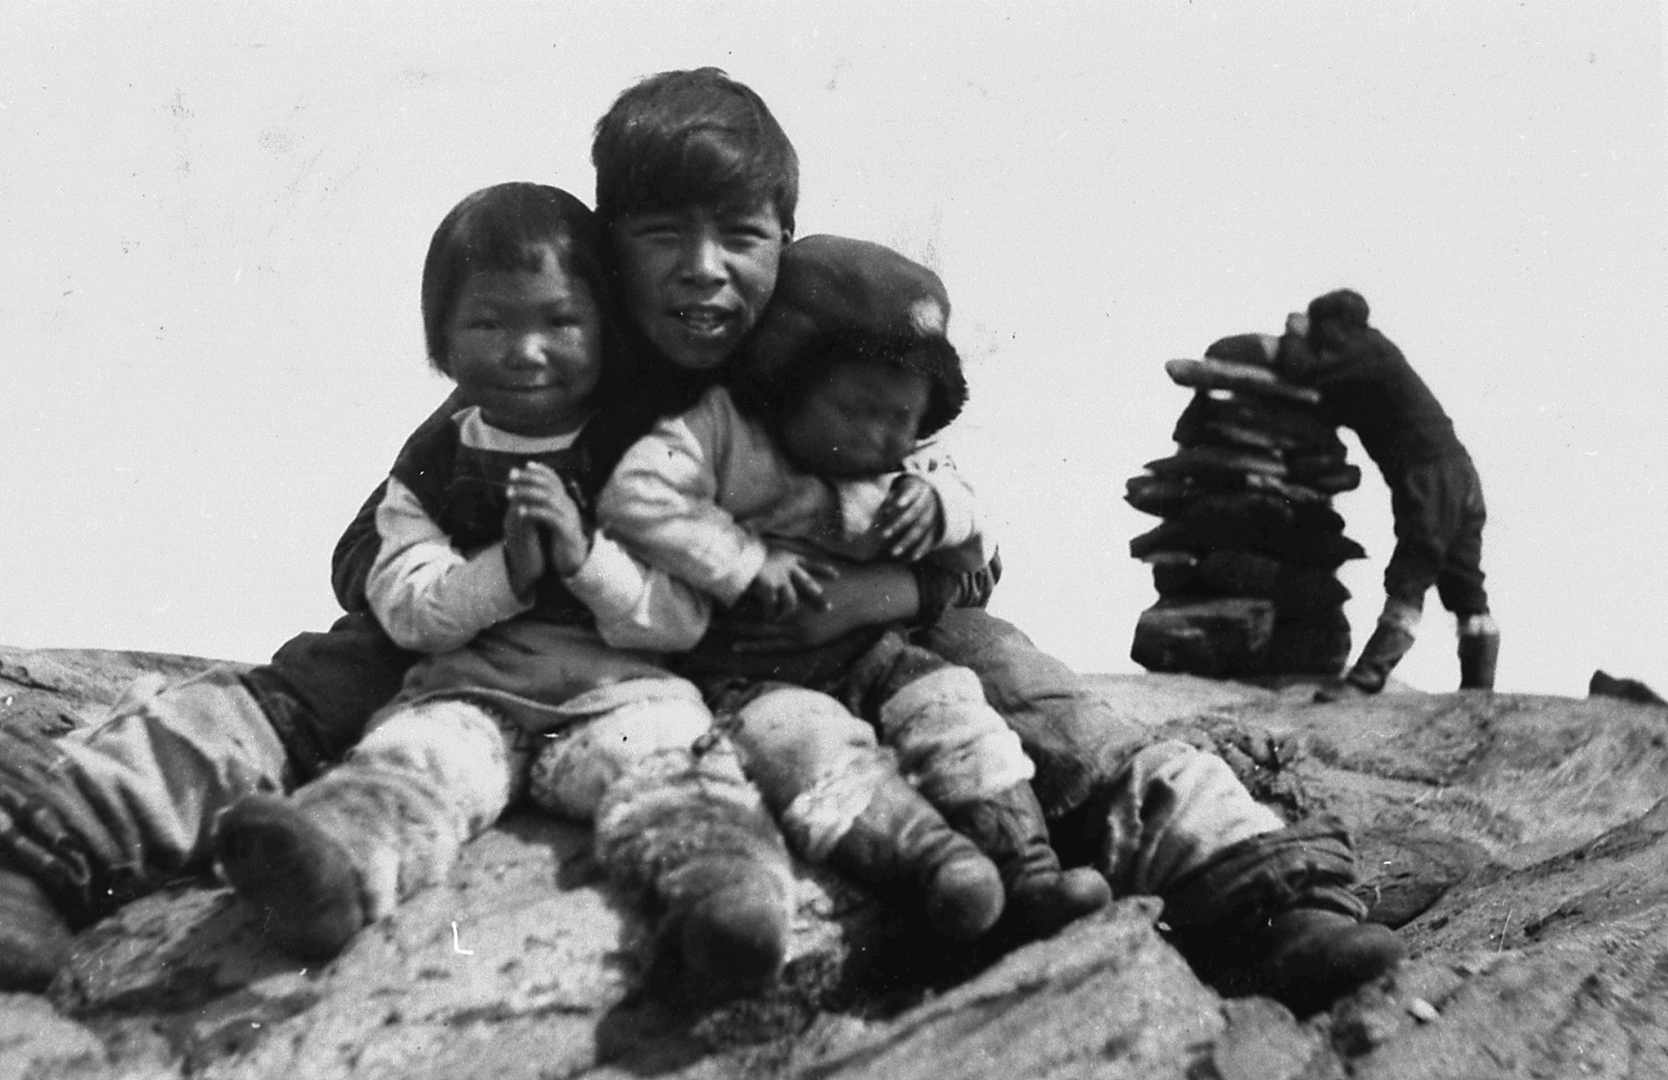 Photograph of children sitting side by side on a rock. Behind, a man is leaning on an inukshuk.